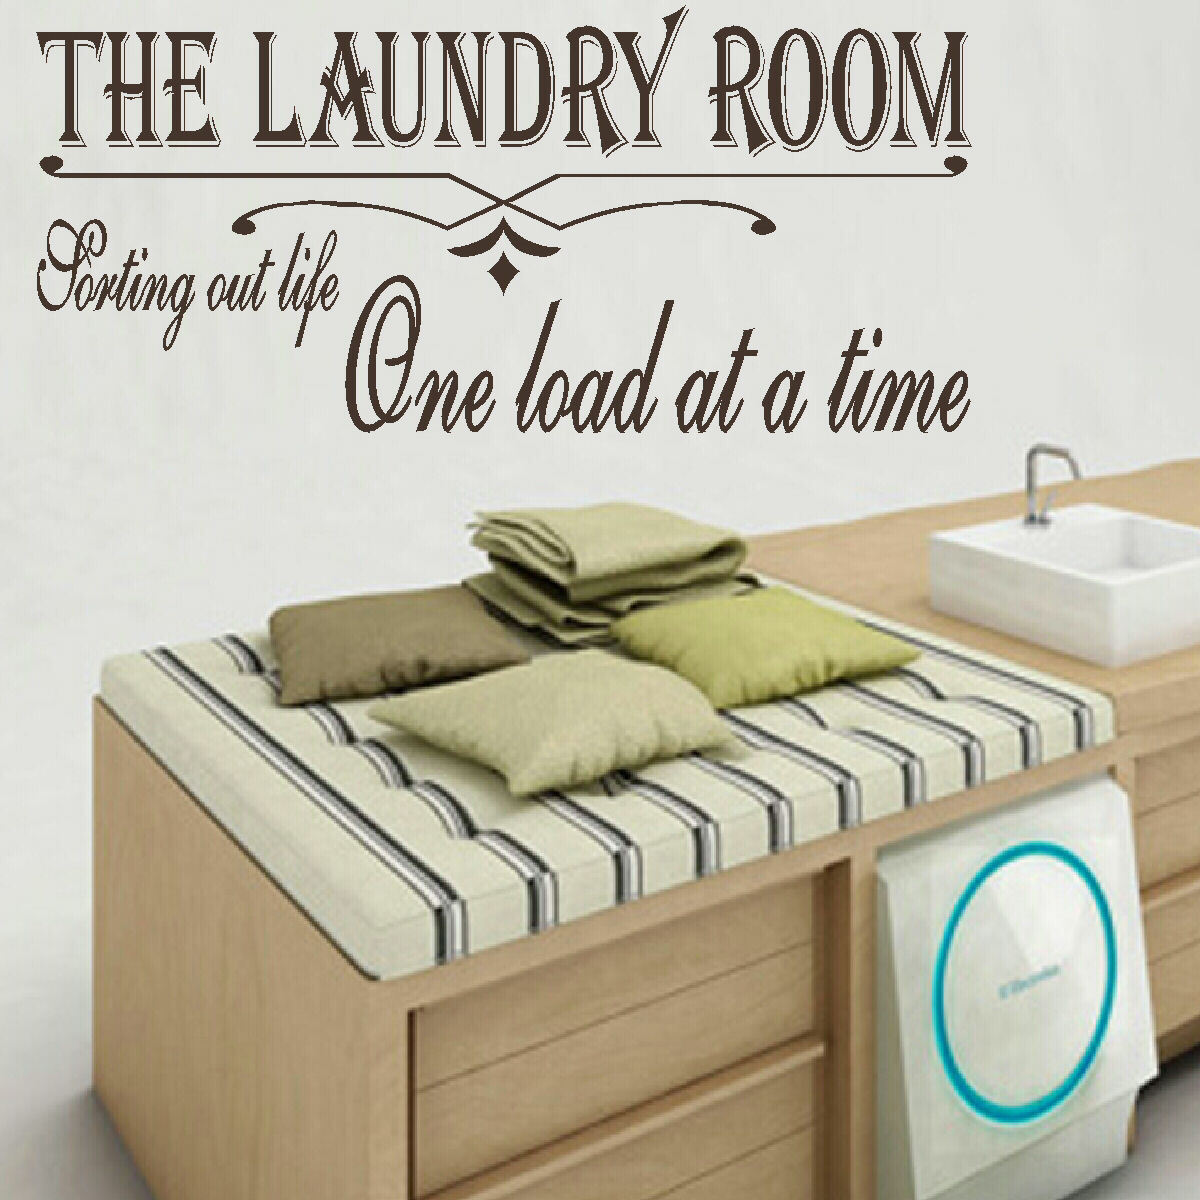 LARGE LAUNDRY ROOM QUOTE SORT LIFE ONE LOAD TIME WALL ART STICKER TRANSFER  DECAL. Quote ... Part 29